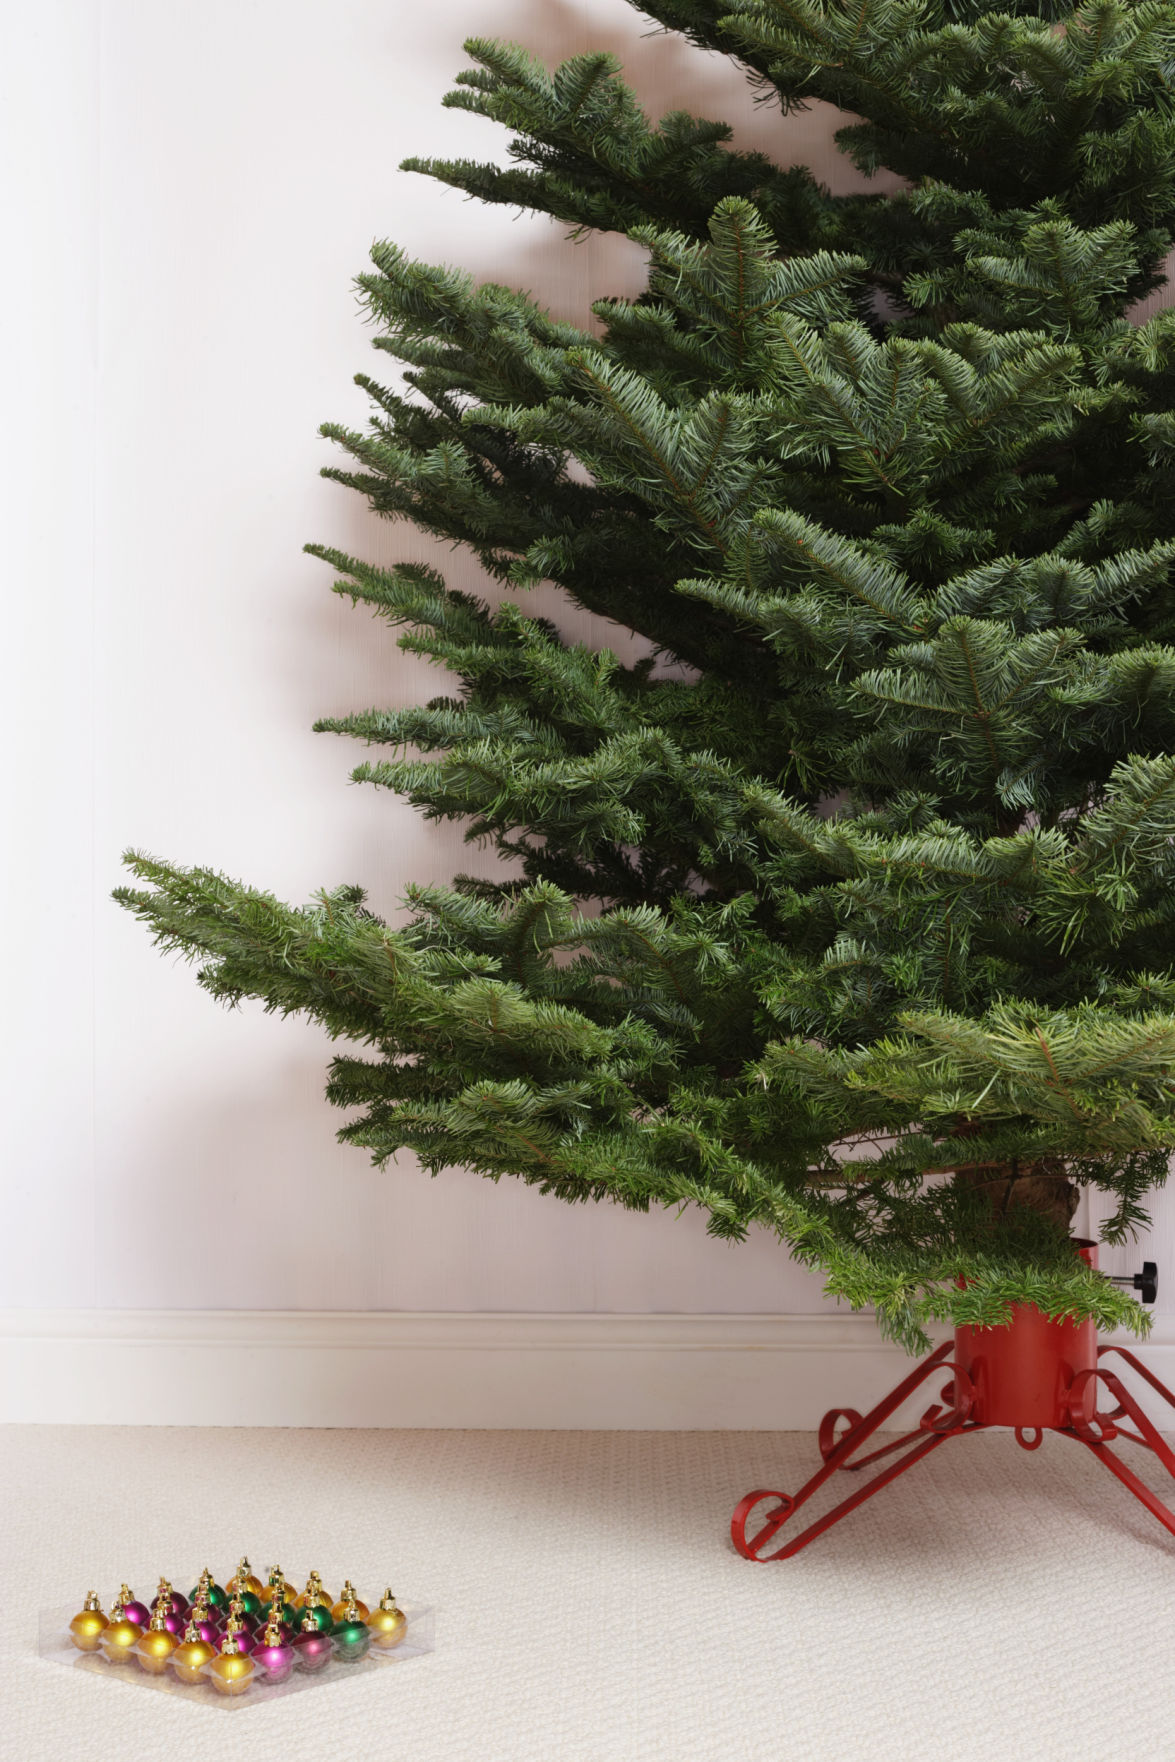 How to care for your christmas tree montana news billingsgazette keep watch on the trees water solutioingenieria Choice Image